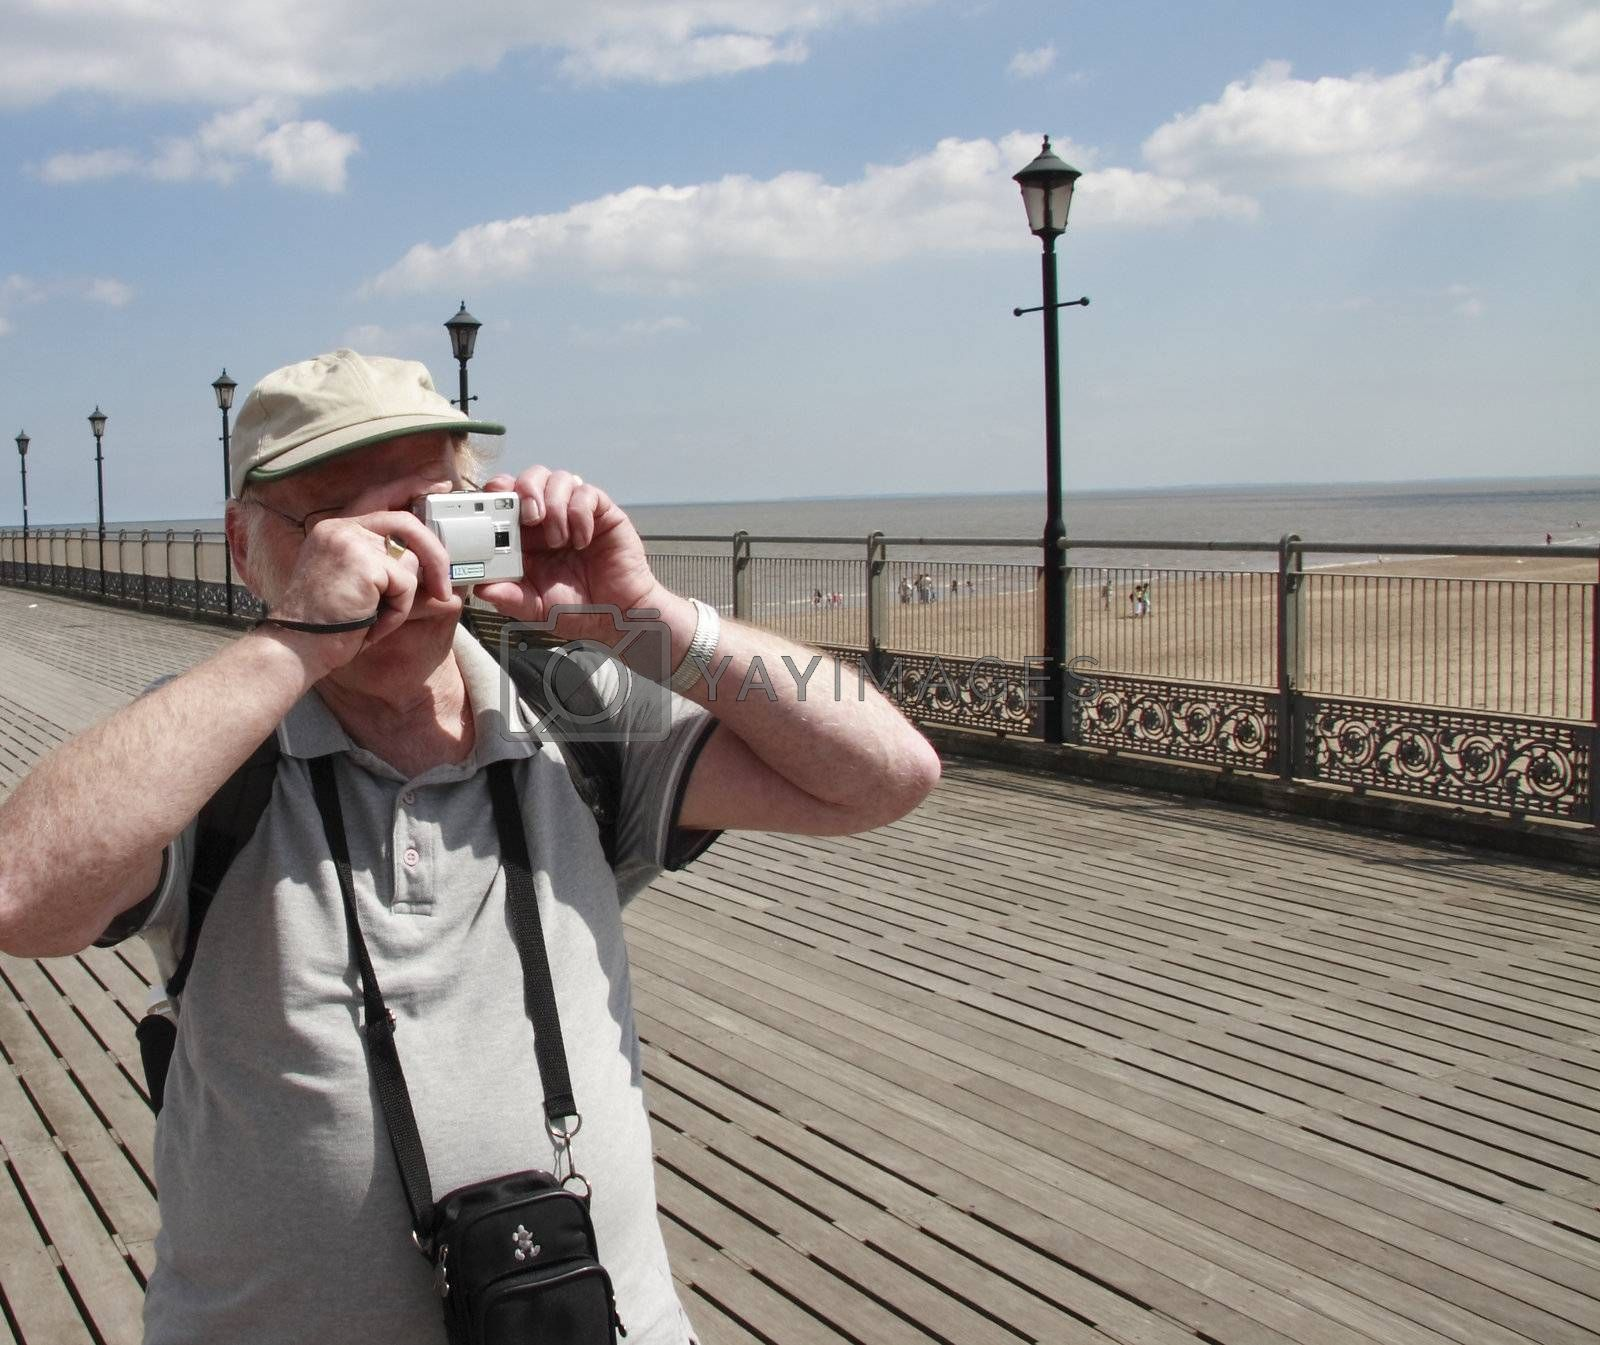 amateur photographer with his point and shoot camera taking snapshots